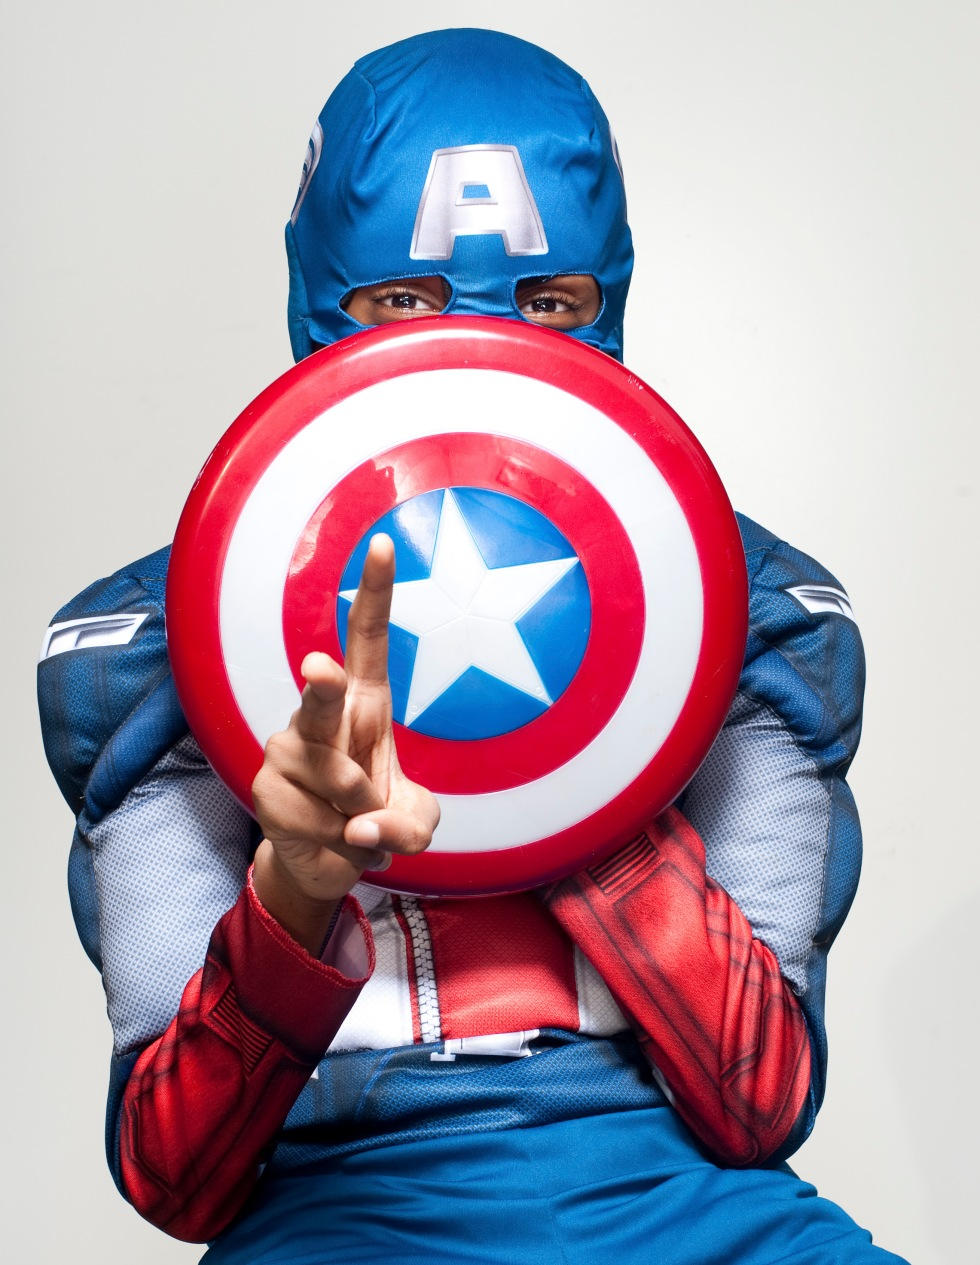 Oldest Nephew. Captain America. Shot by Nigel Morris, of Nigel Morris Photography